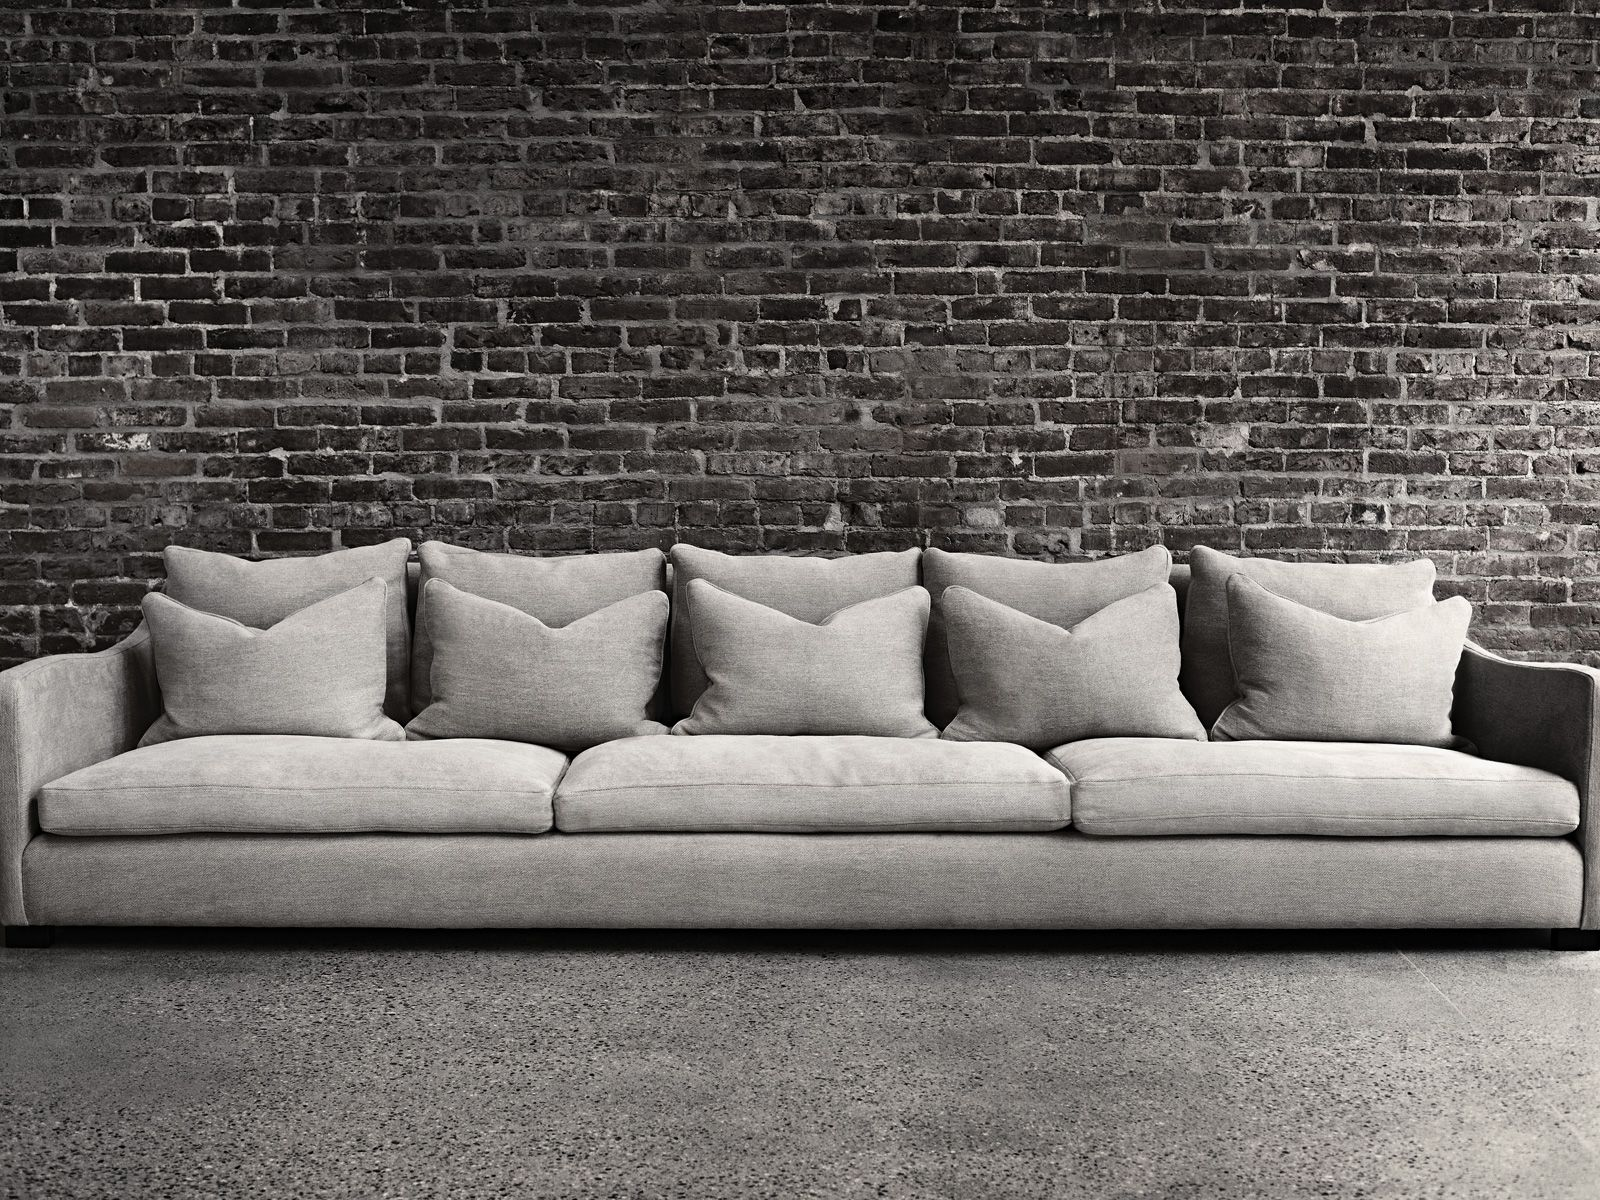 Montauk Sofa I lust over this sofa Love the skinny arms